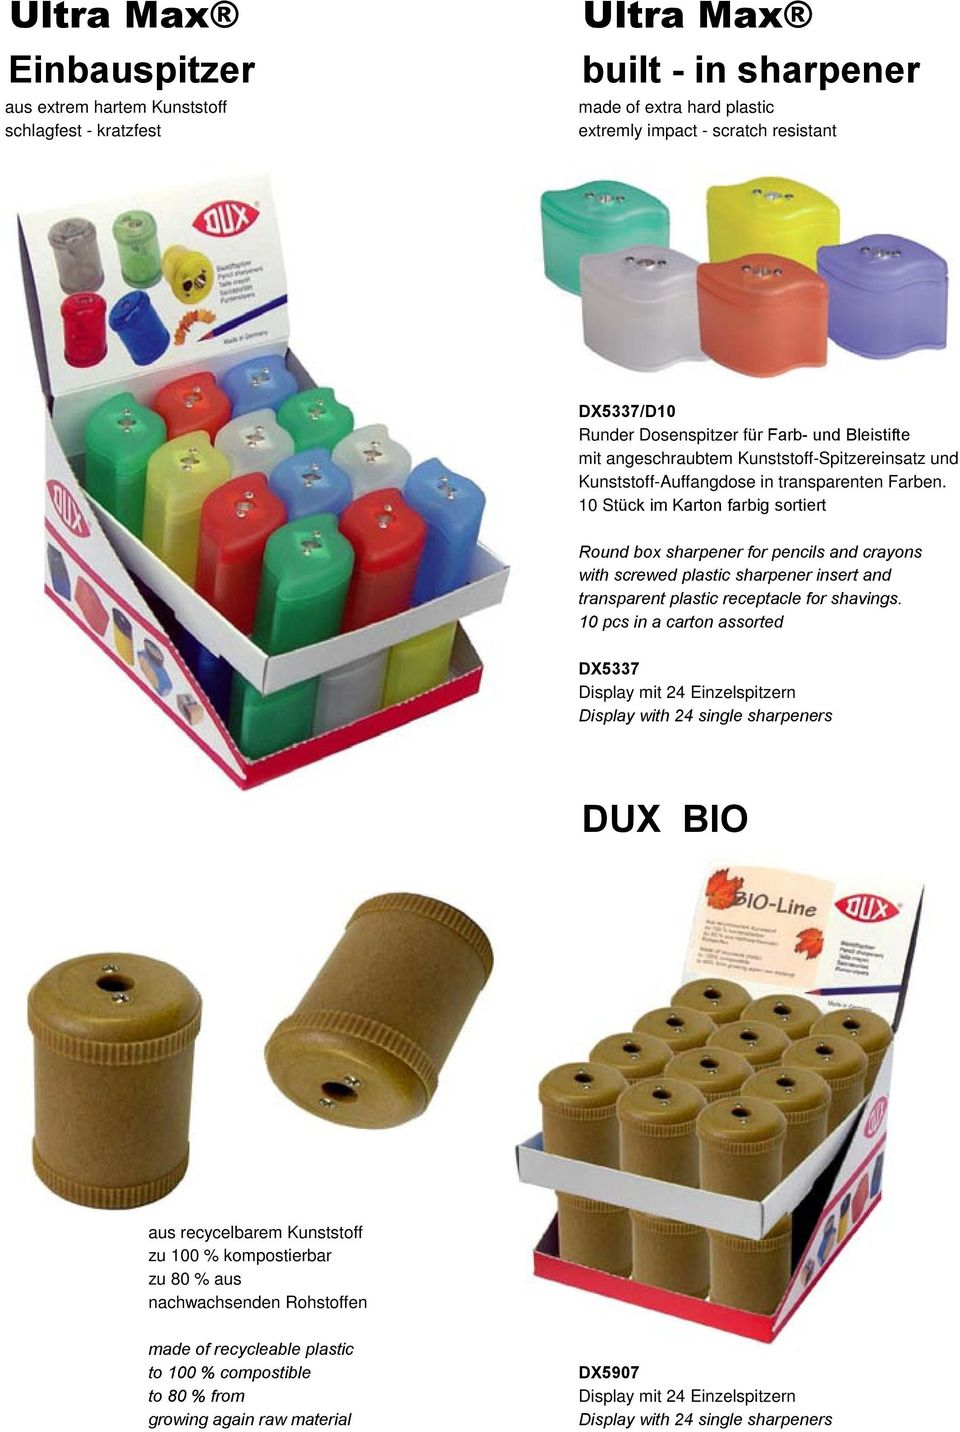 10 Stück im Karton farbig sortiert Round box sharpener for pencils and crayons with screwed plastic sharpener insert and transparent plastic receptacle for shavings.